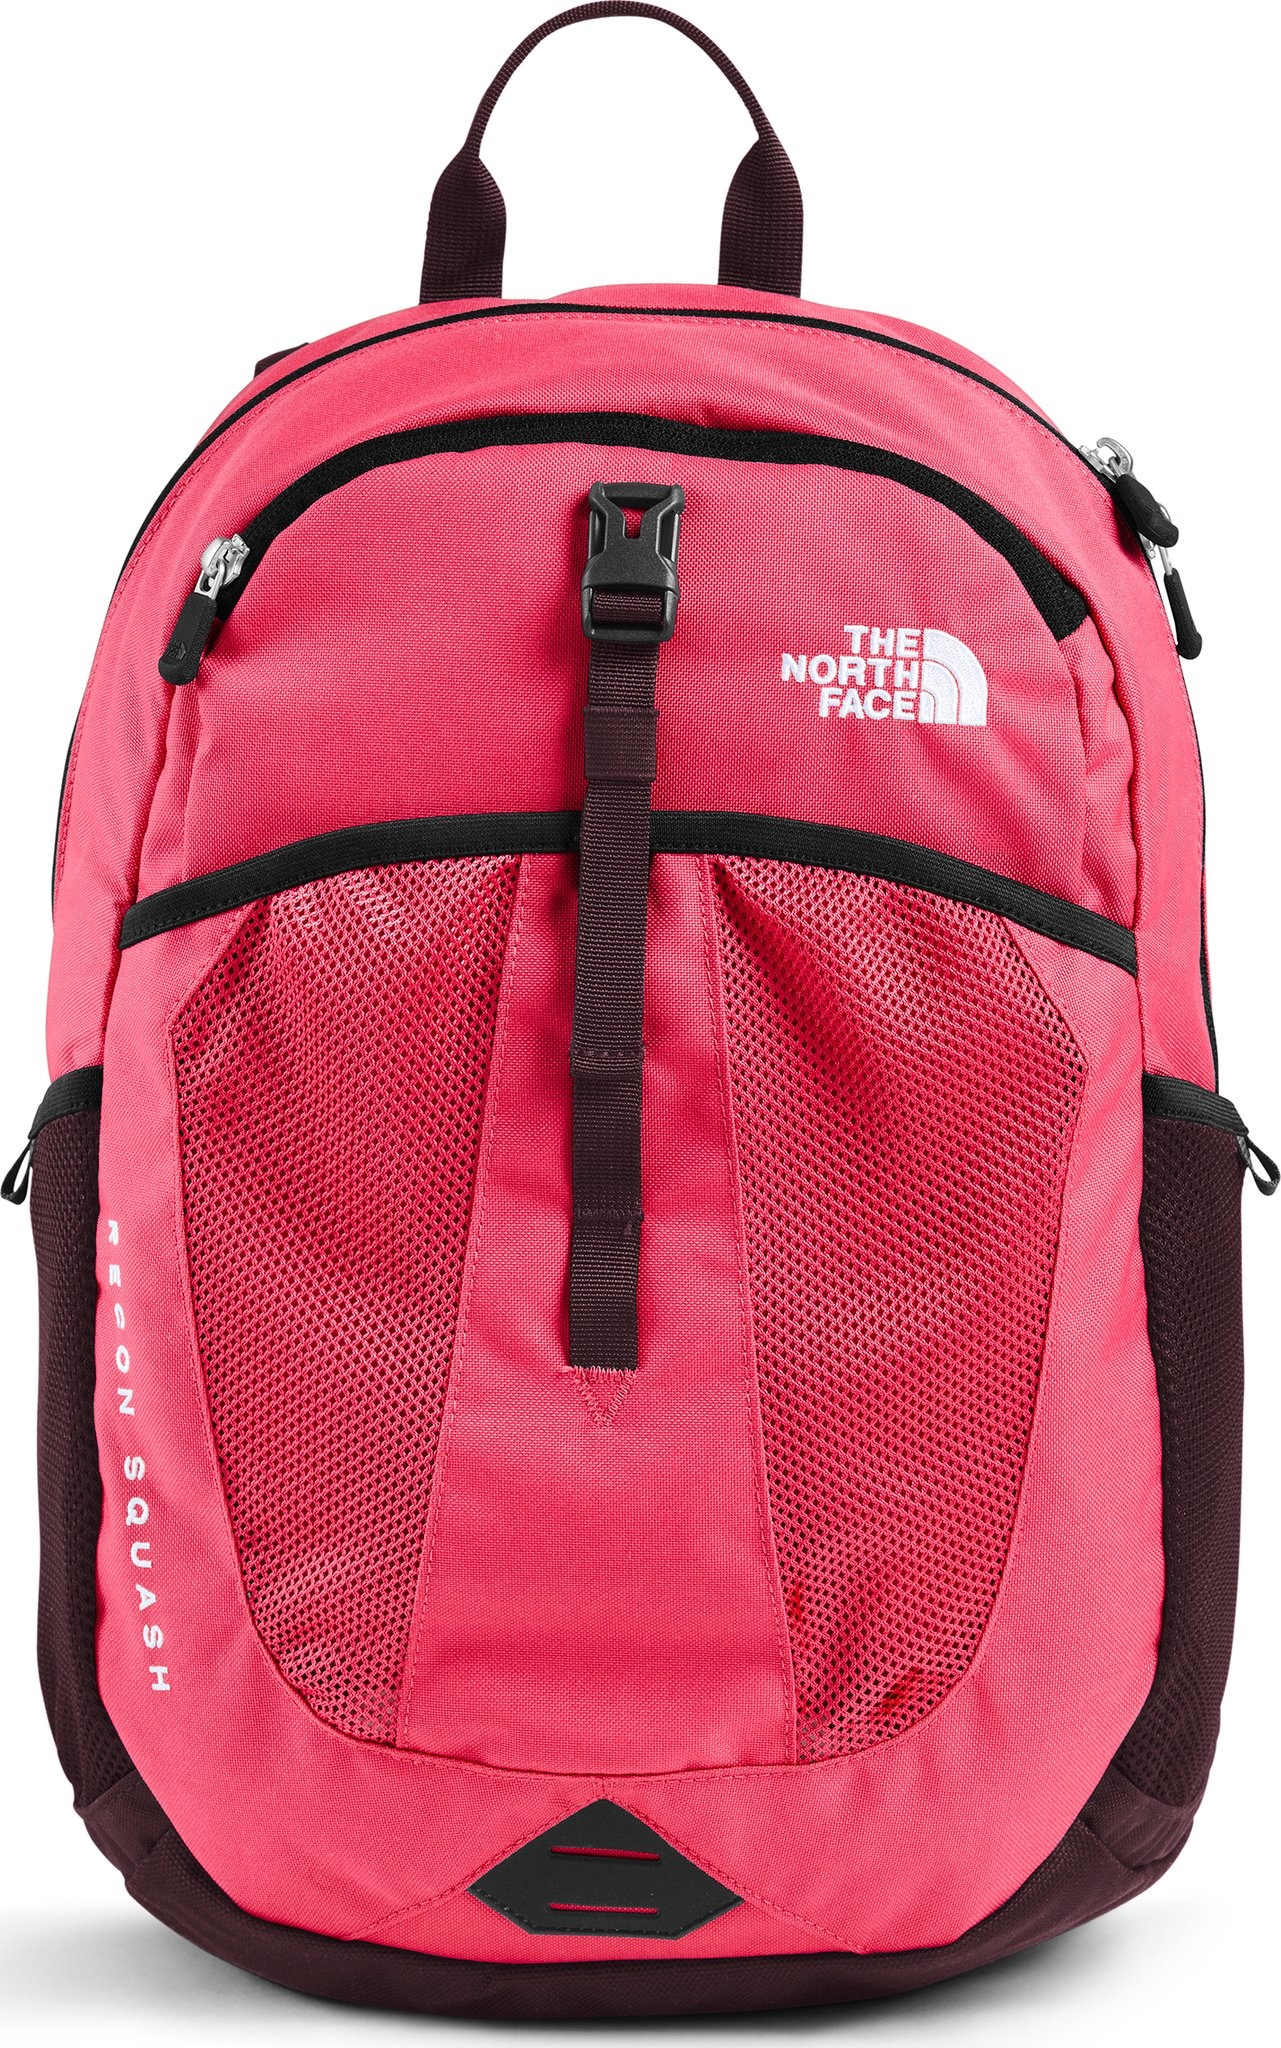 The North Face Youth Recon Squash Backpack Pink/Root Brown